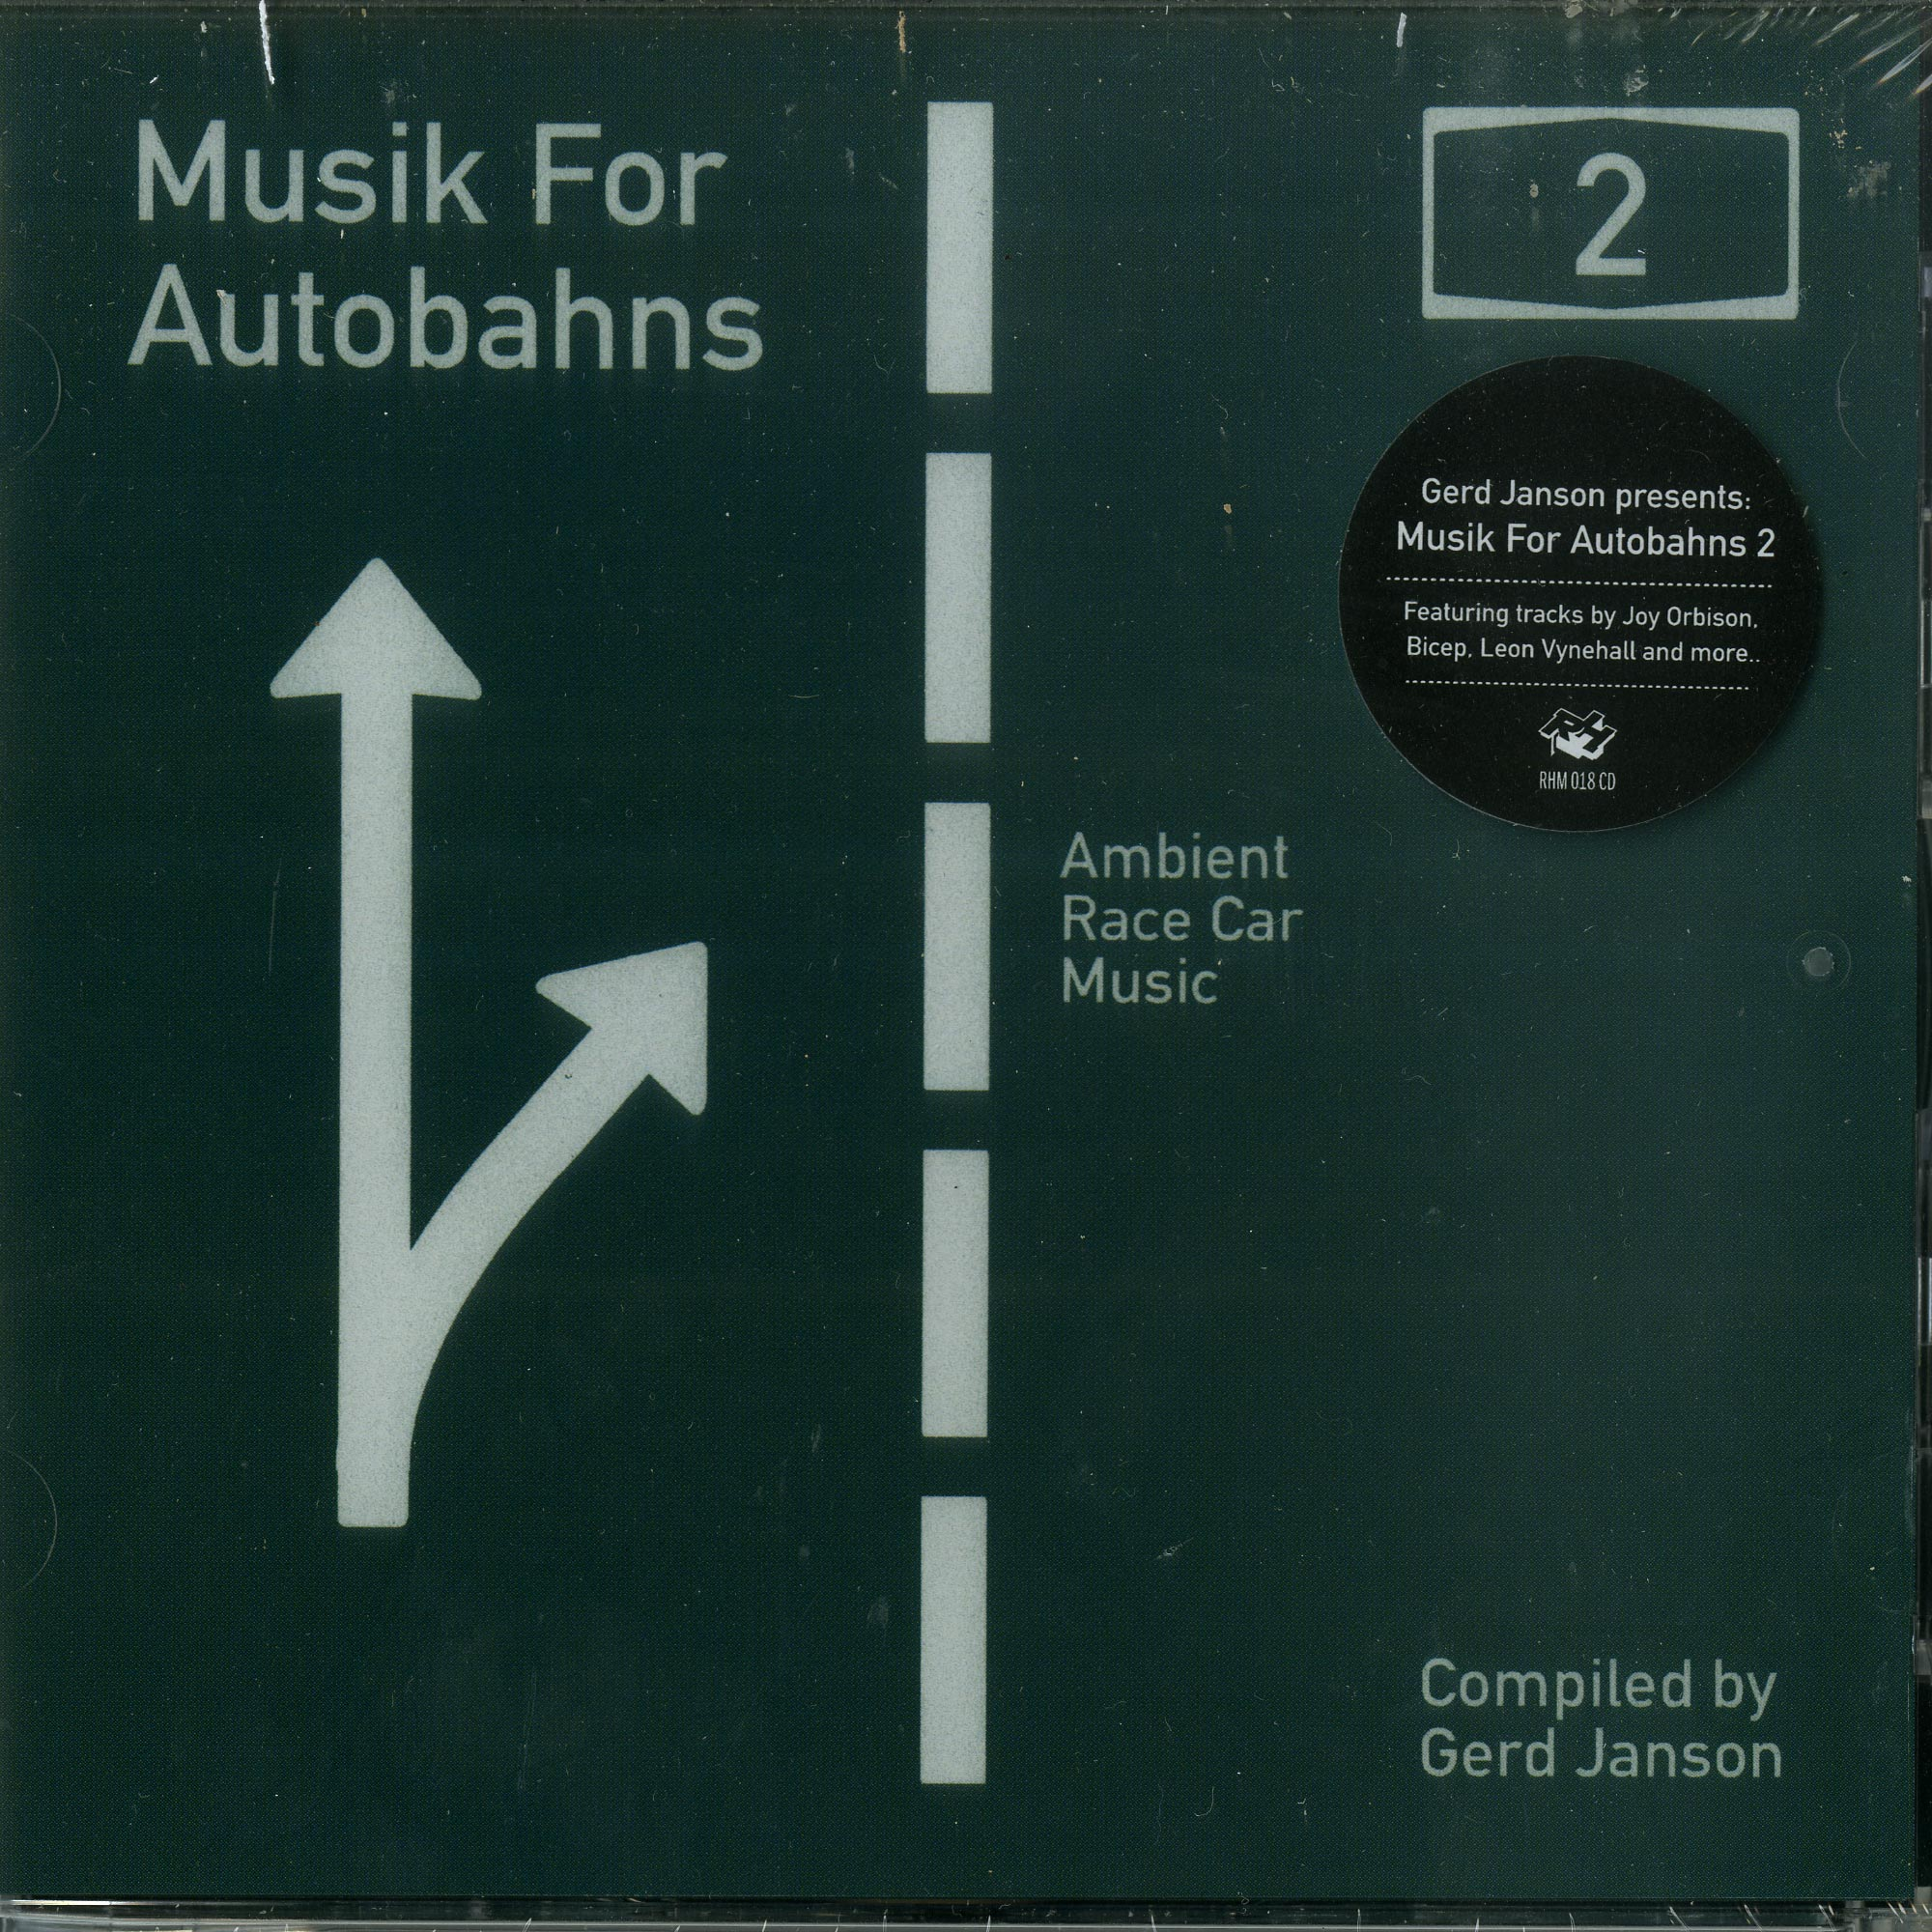 Gerd Janson Presents - MUSIK FOR AUTOBAHNS 2